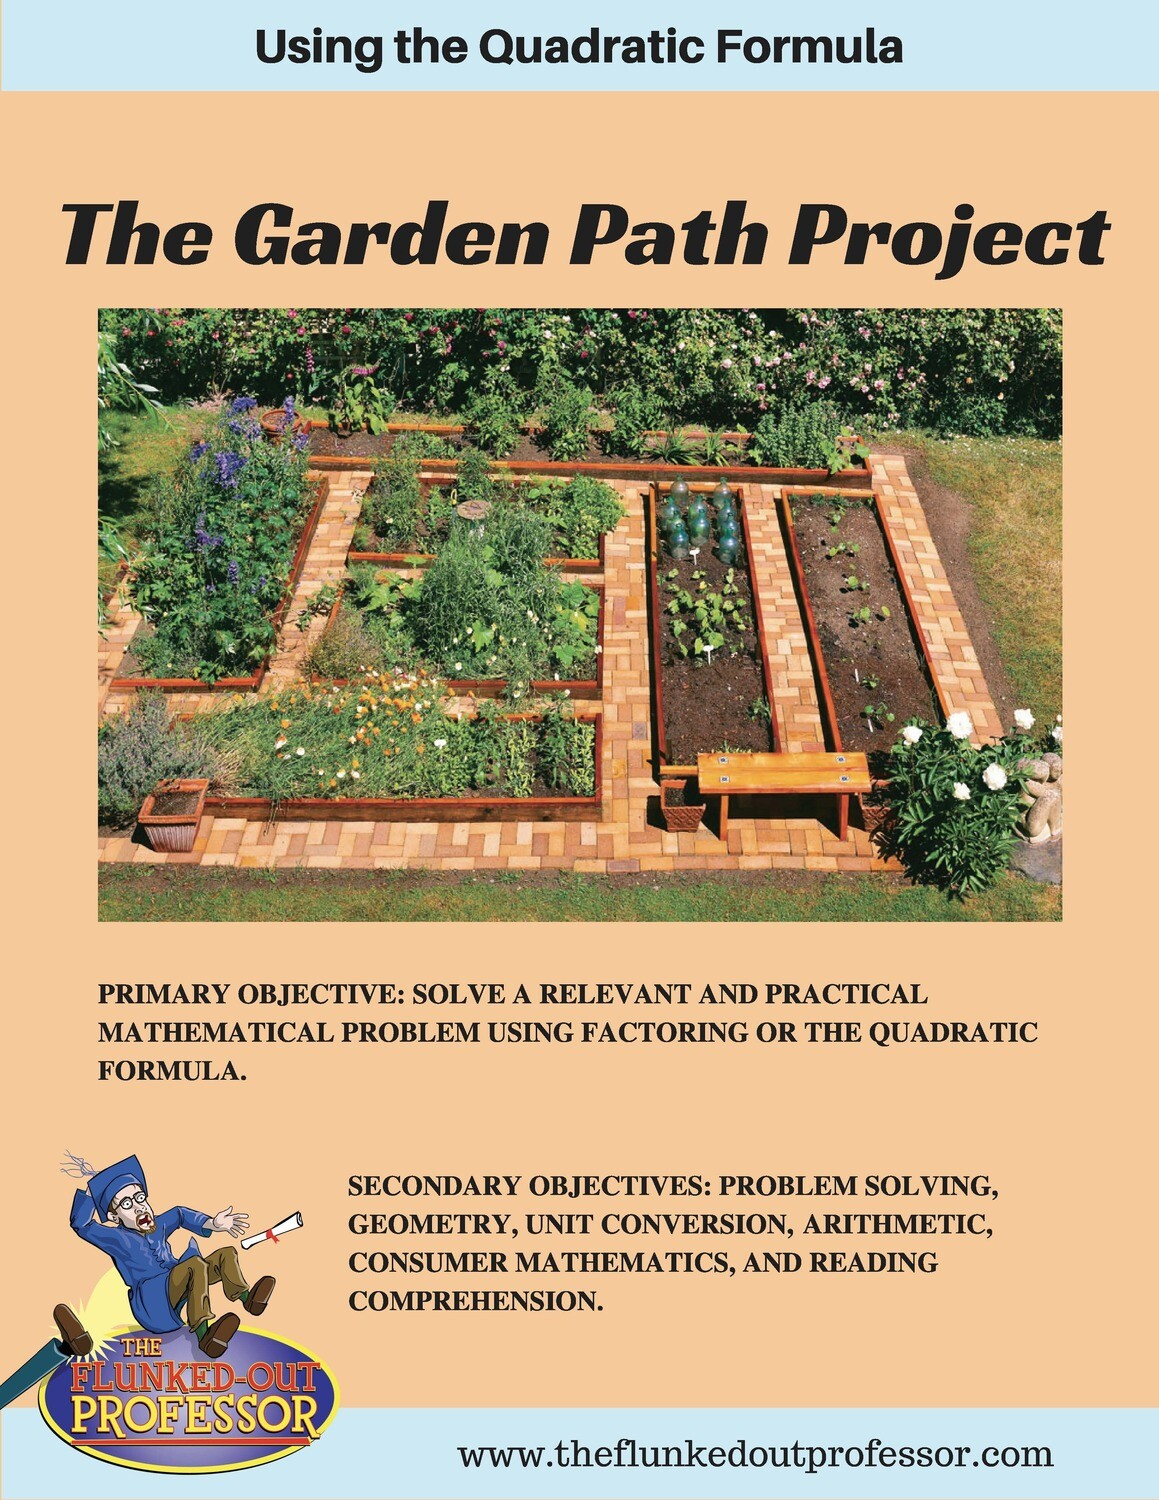 The Garden Path Project